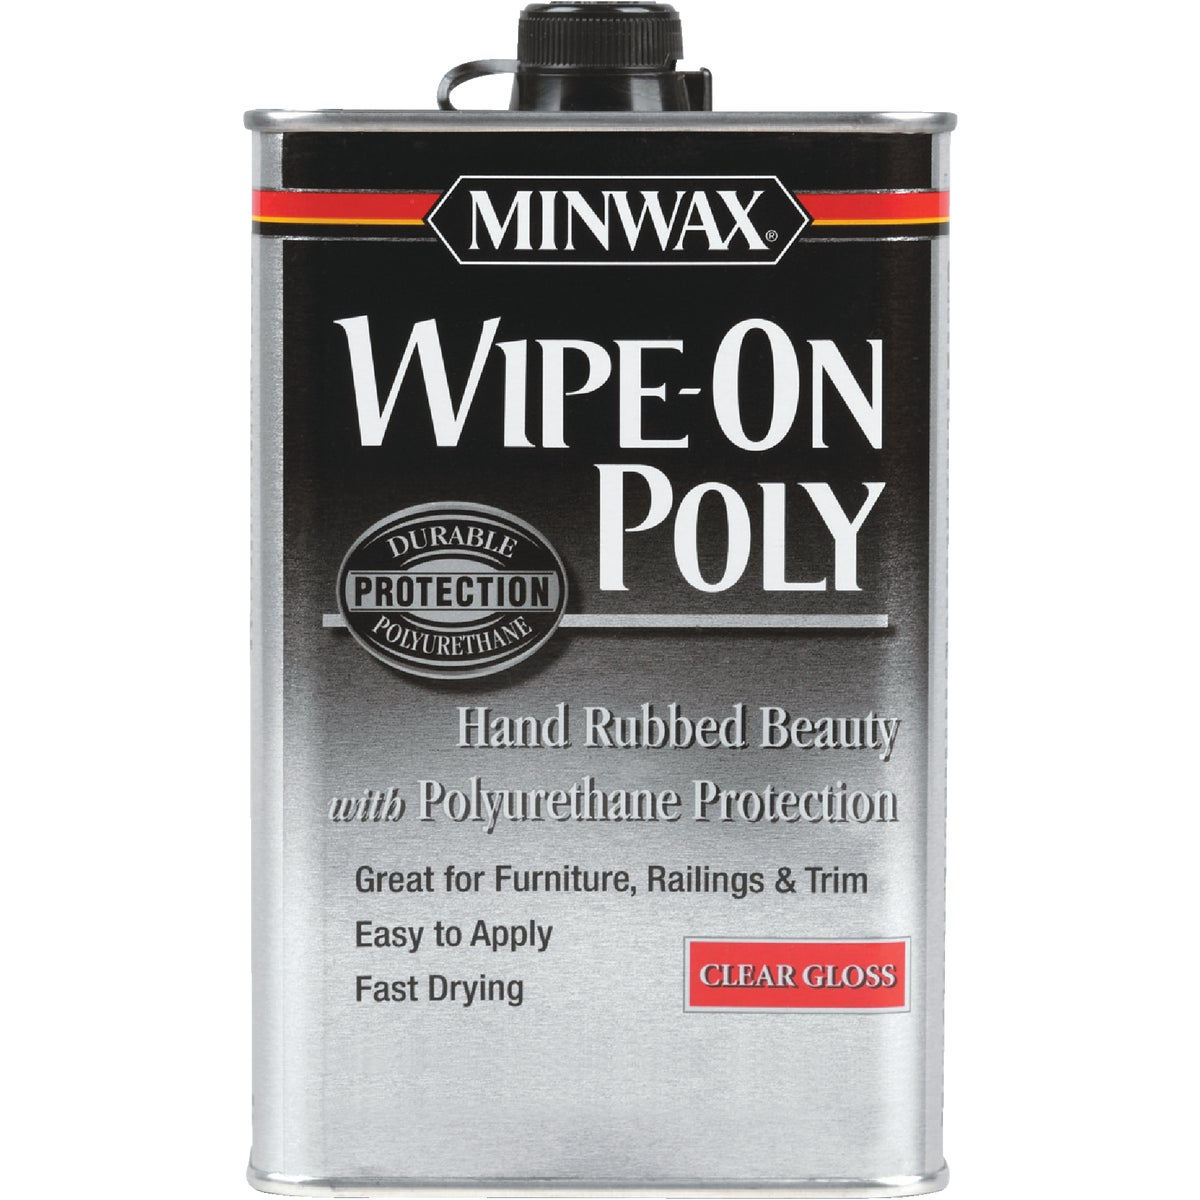 GLS WIPE-ON POLYURETHANE - 40900 by Minwax Company